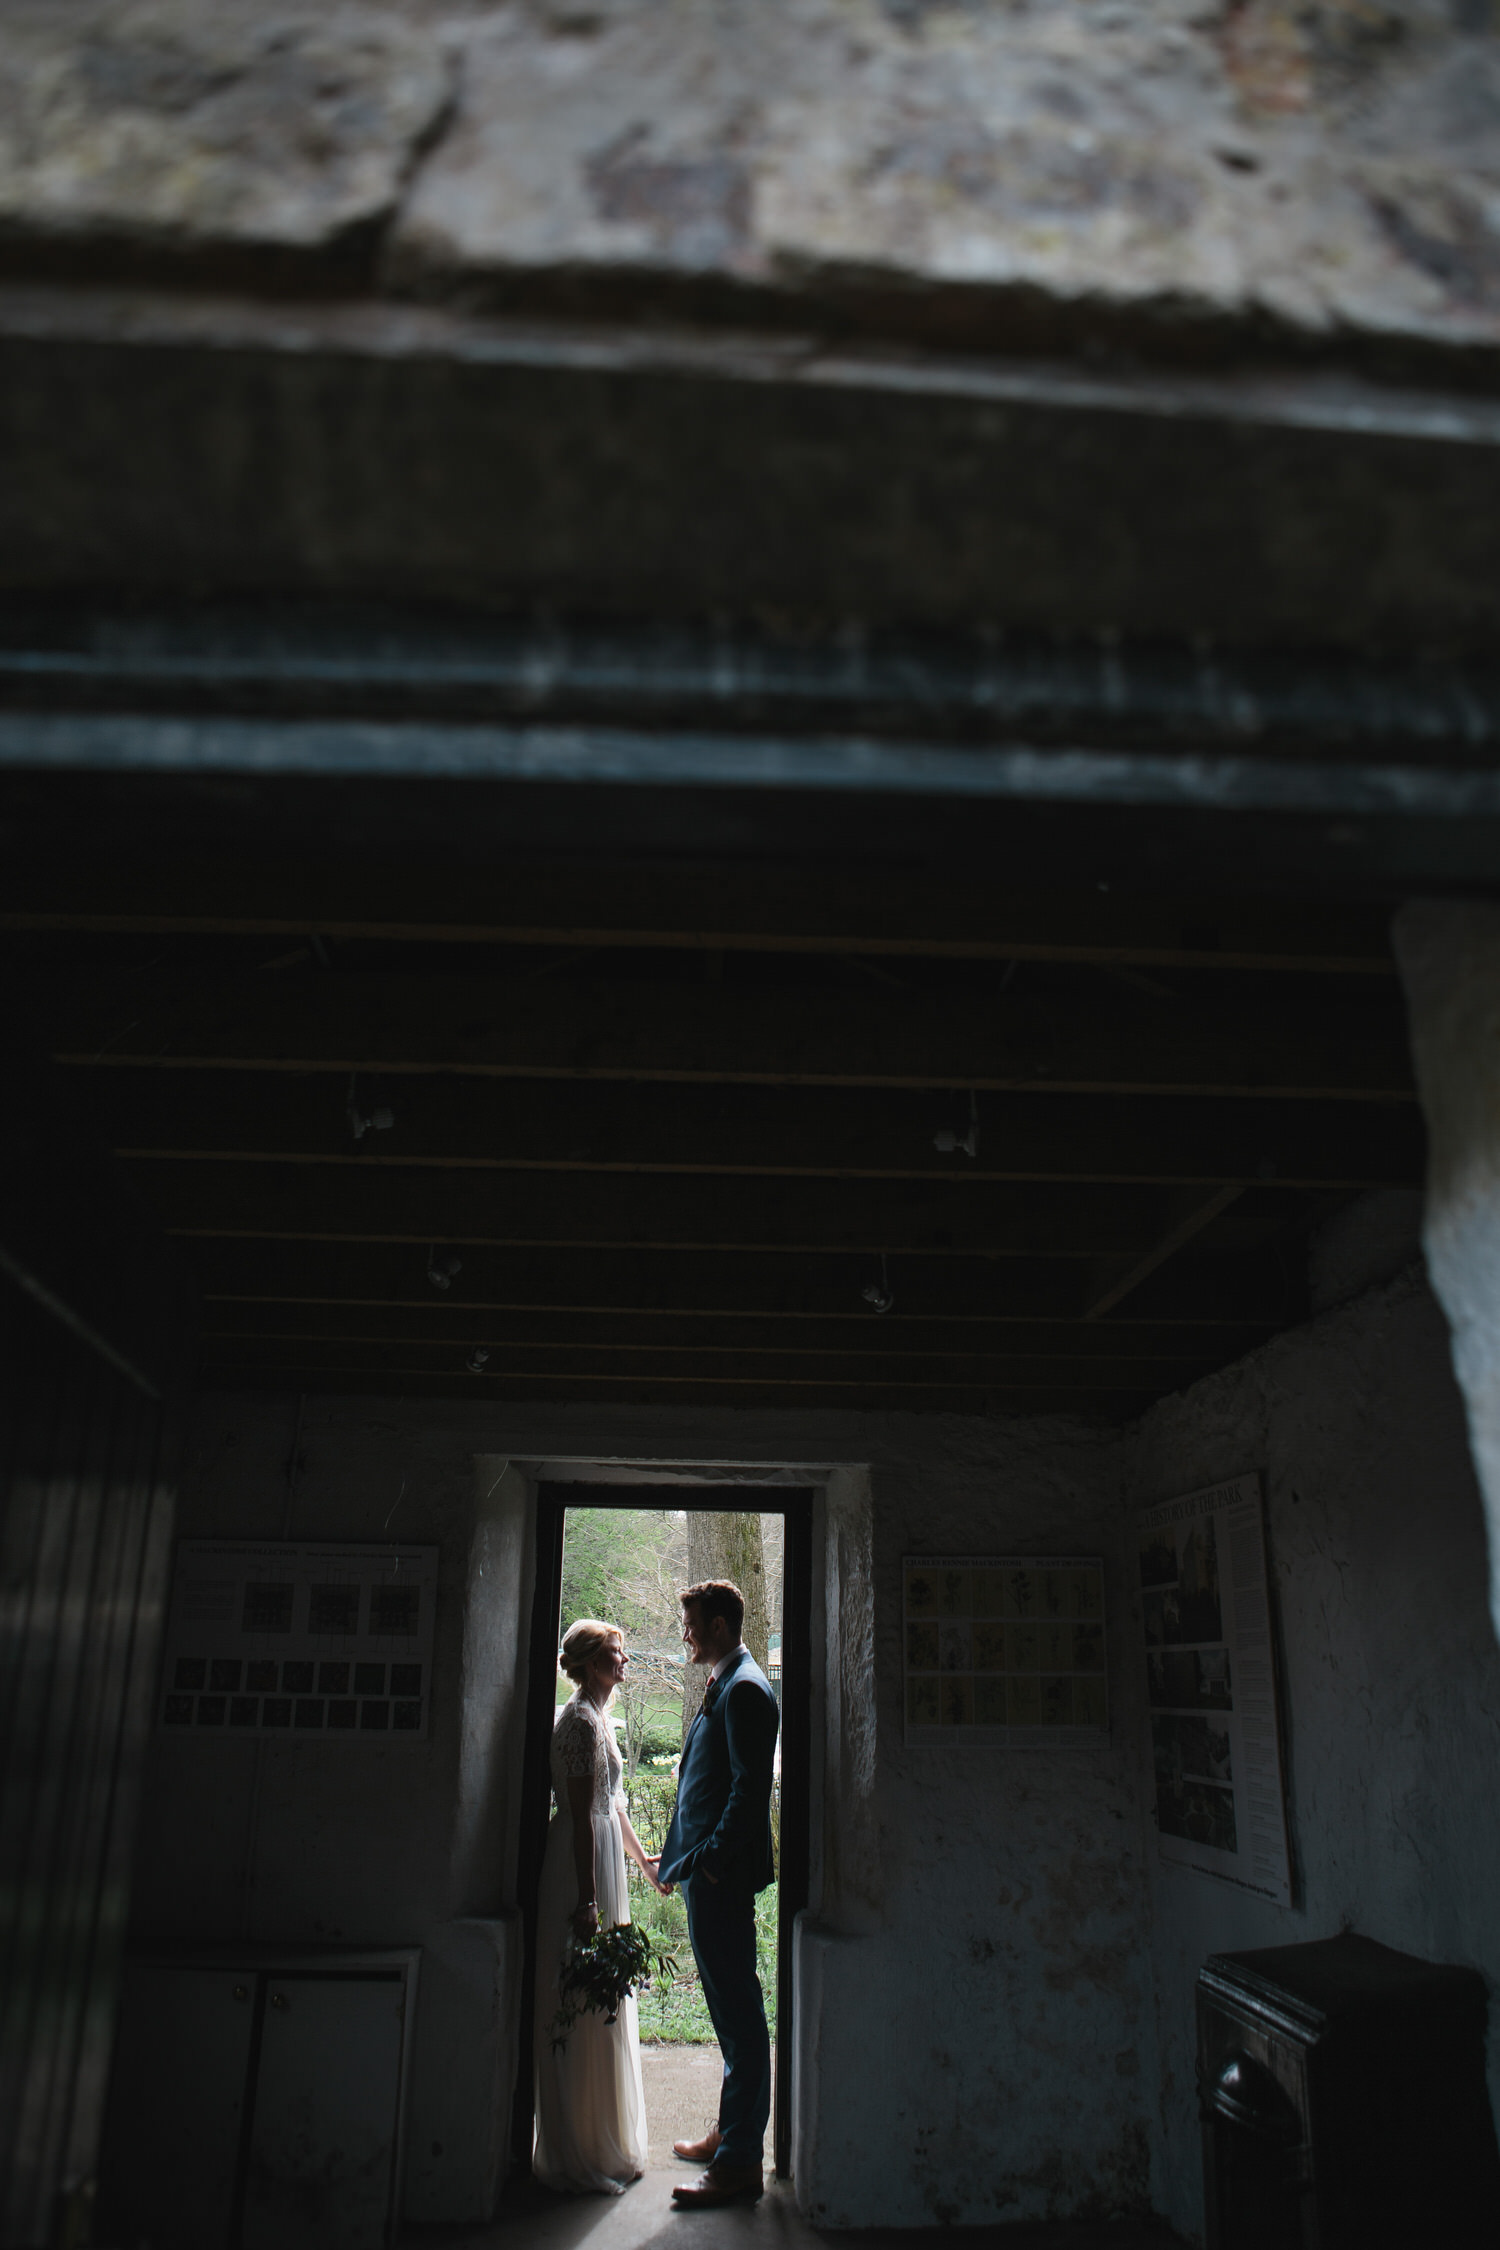 alternative_photographer_wedding_uk_mirrorbox_049.jpg